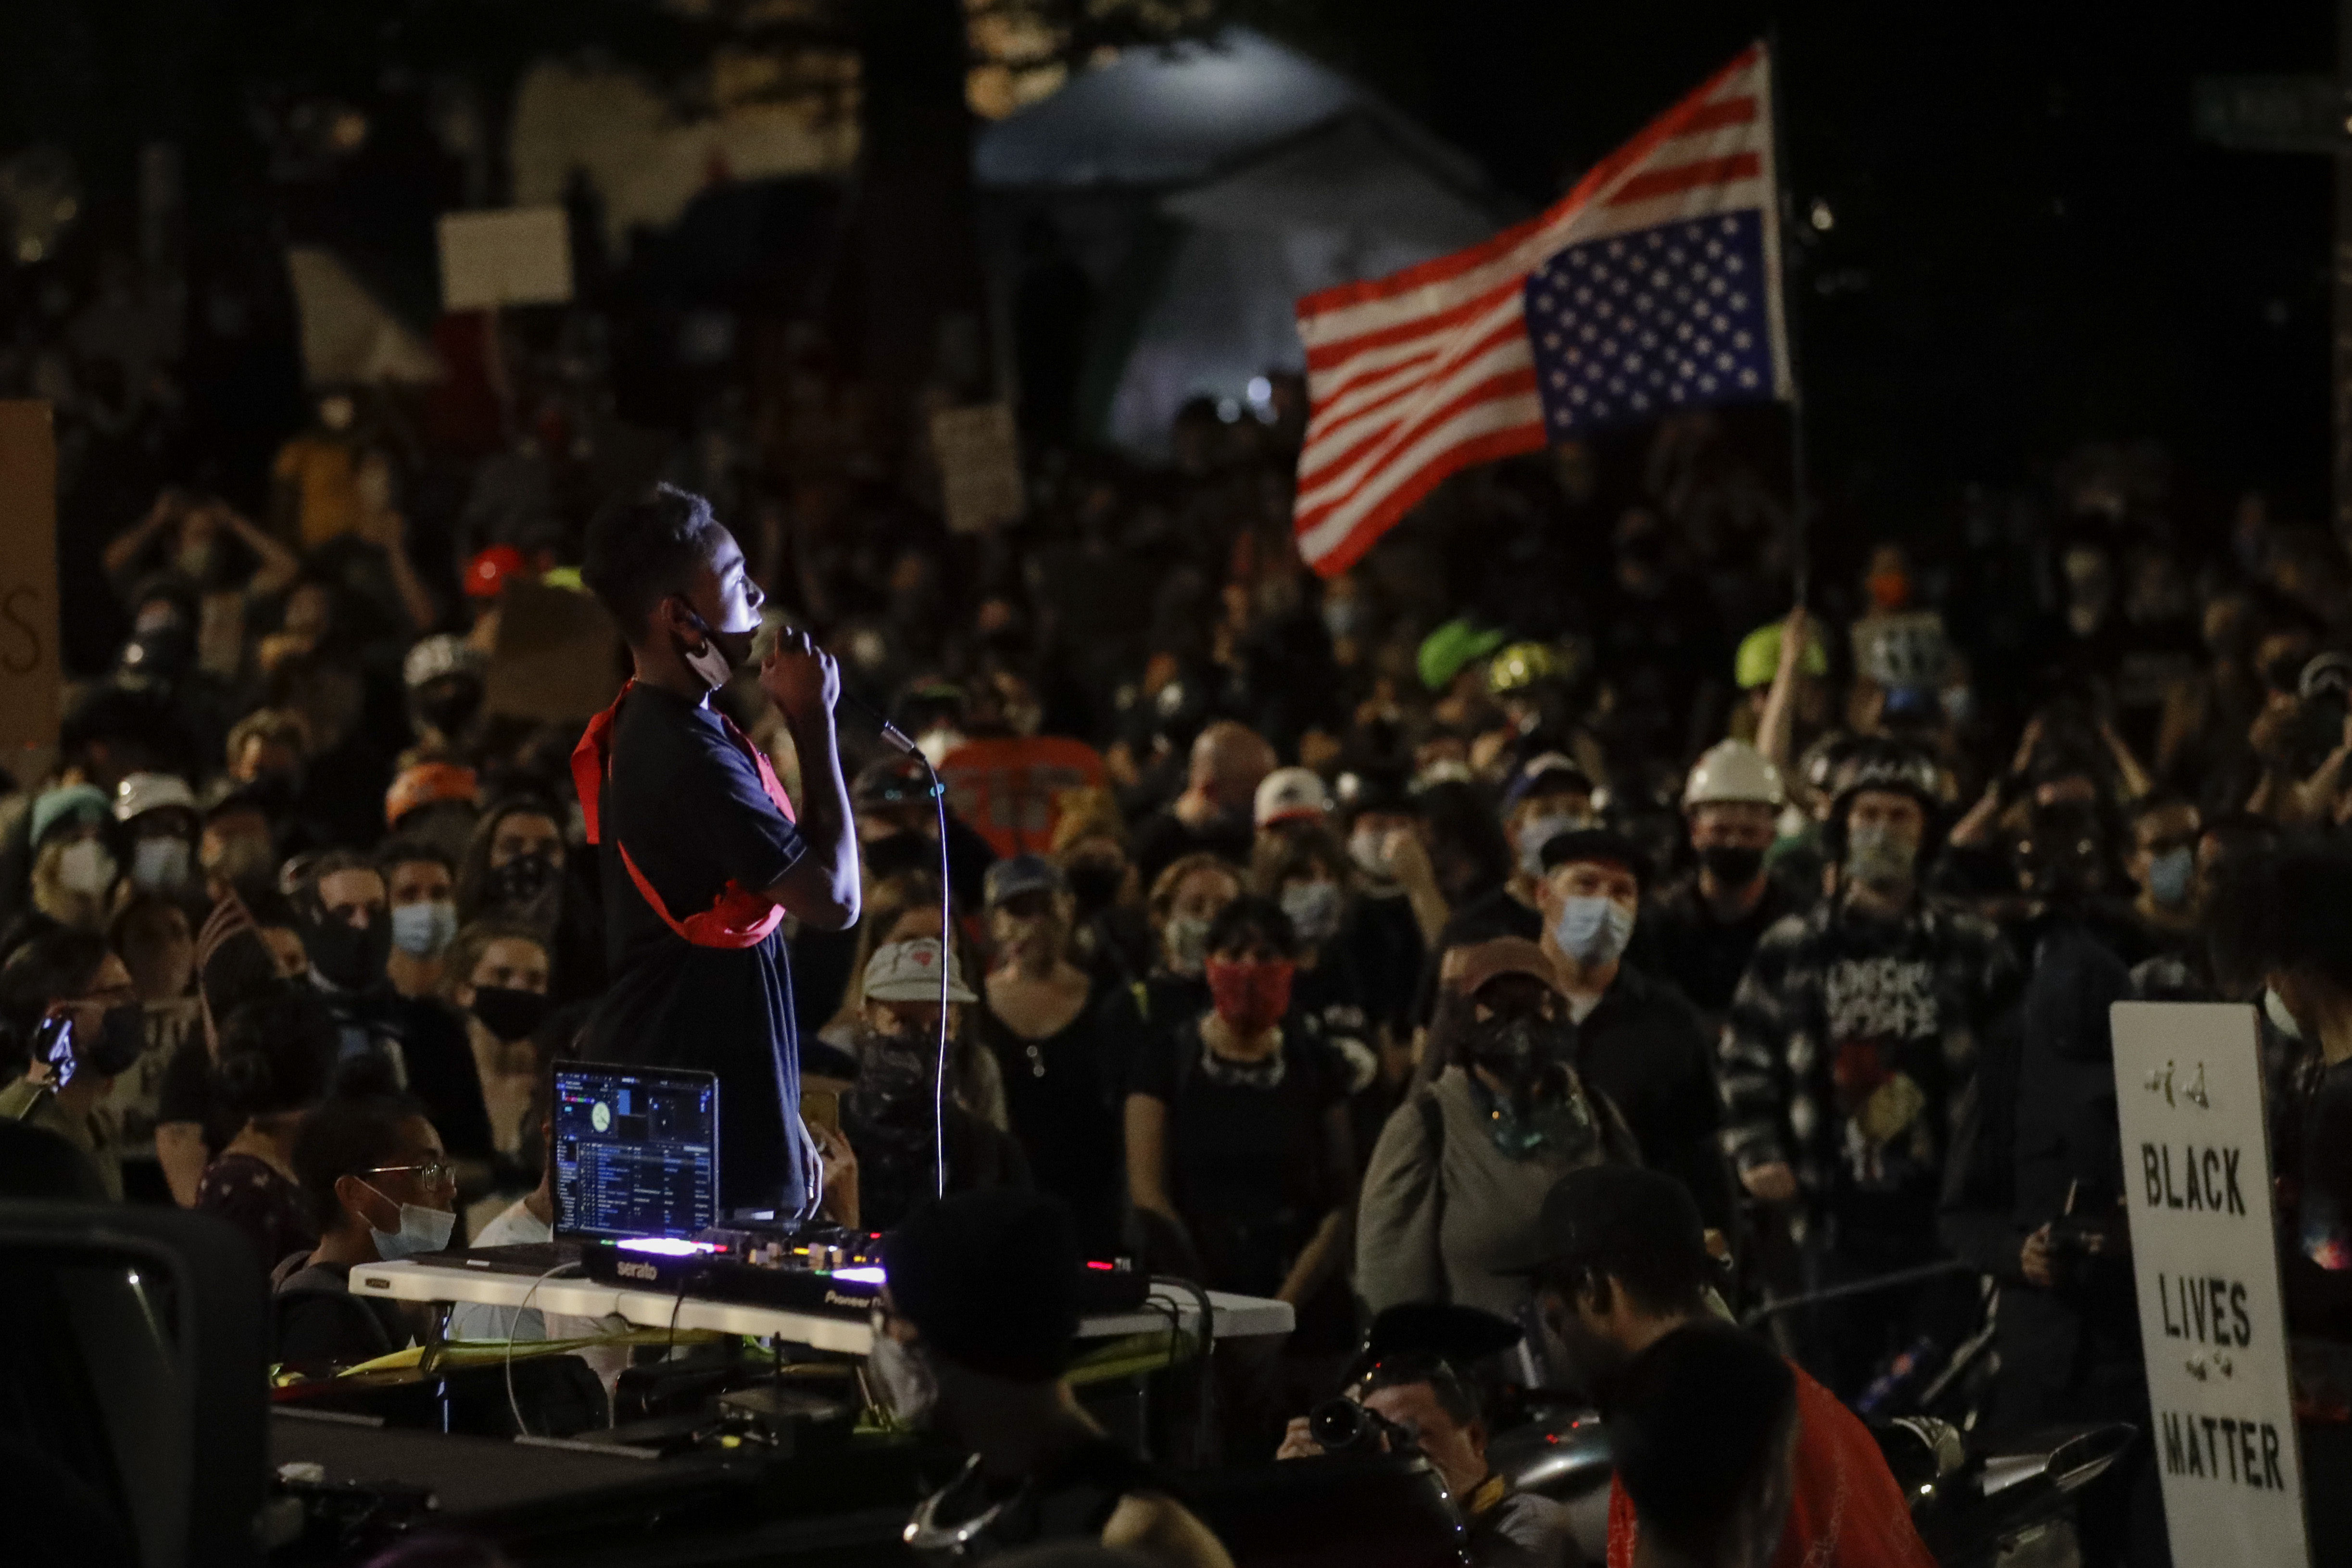 A demonstrator speaks to a crowd from the bed of a pickup truck during a Black Lives Matter protest at the Mark O. Hatfield United States Courthouse Sunday, July 26, 2020, in Portland, Ore. (AP Photo/Marcio Jose Sanchez)